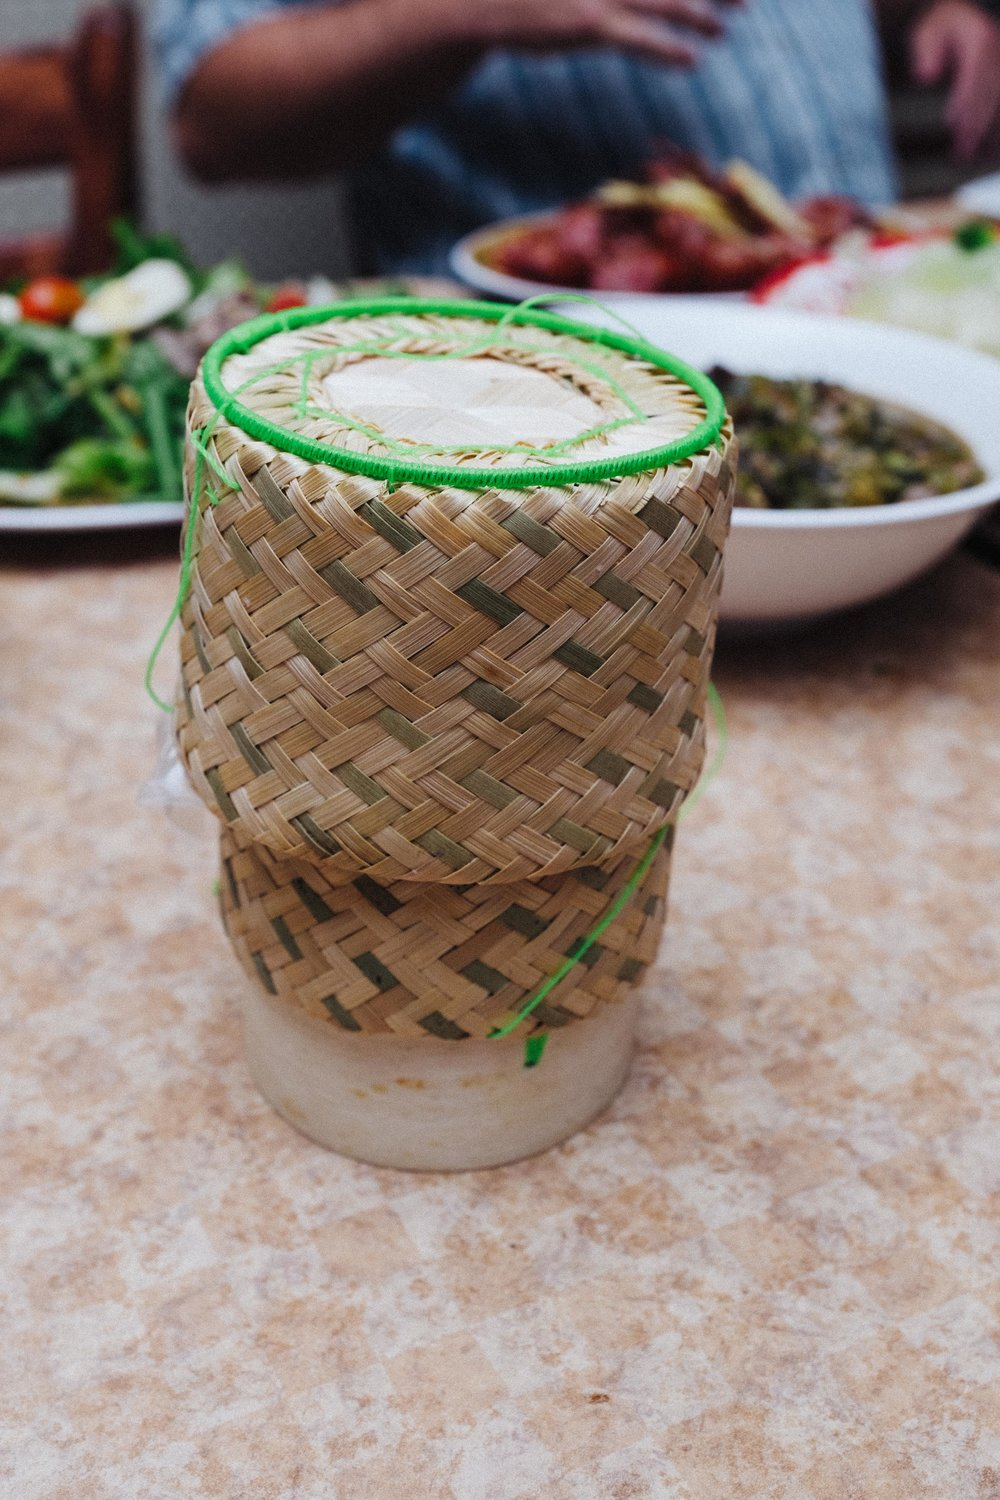 Sticky rice is a three meal a day staple in Laos, traditionally served in these small, hand-made baskets.  It is not only a staple food but serves as an edible utensil.